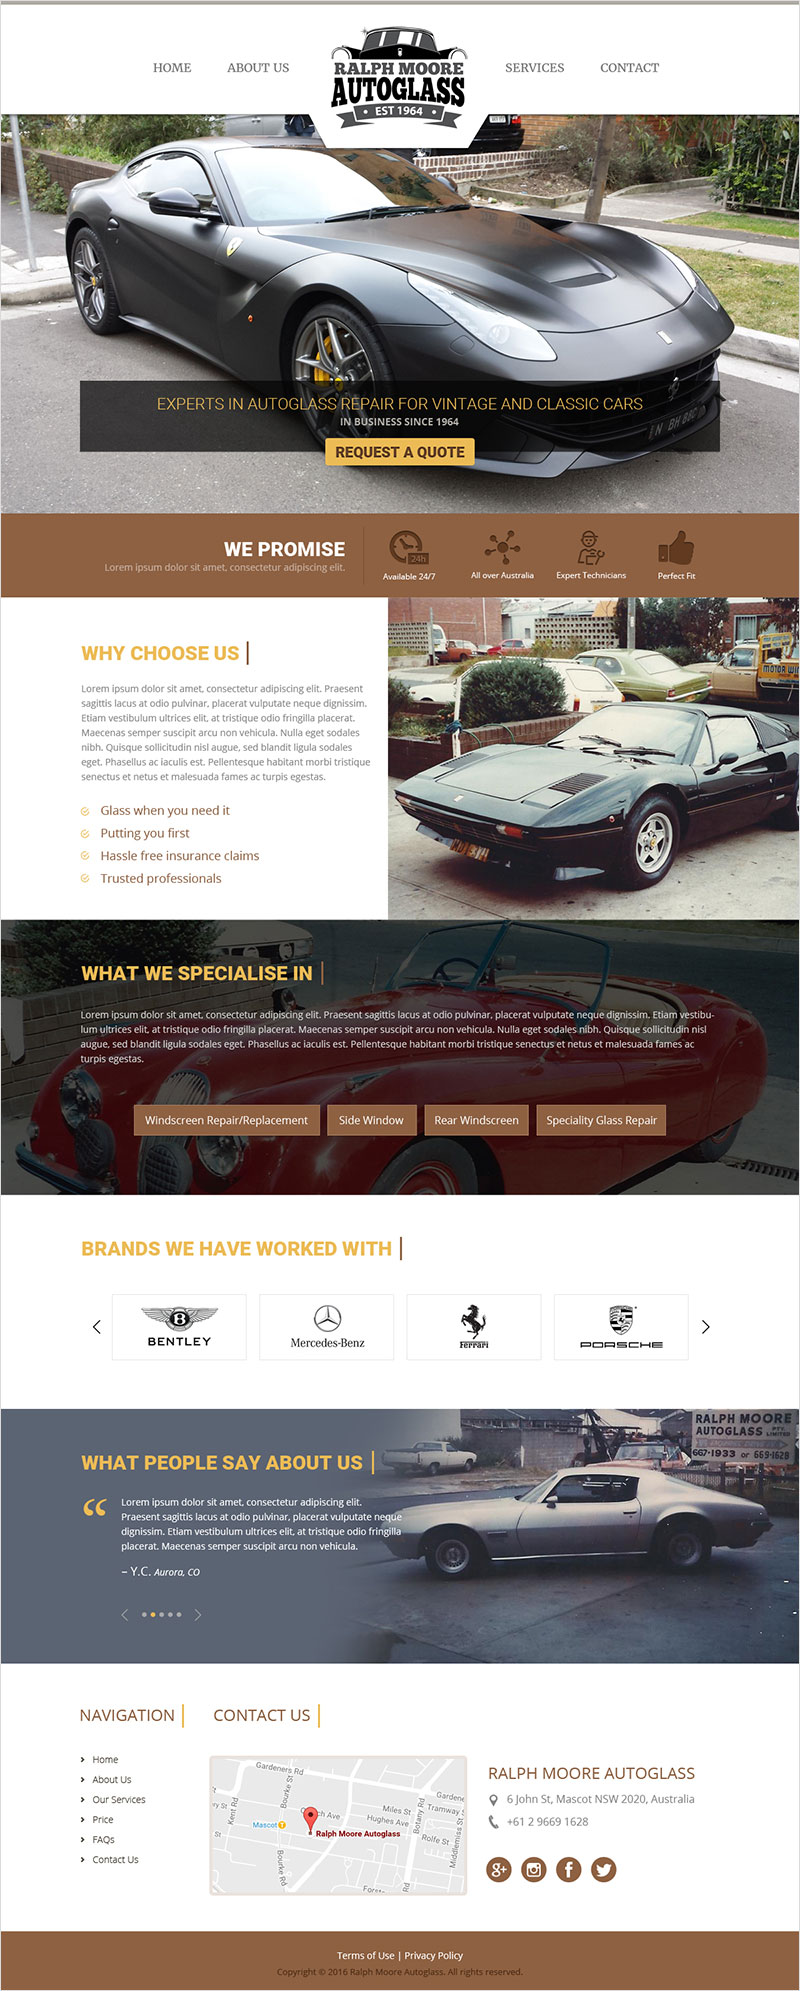 Ralph Moore Auto Glass - Website Design